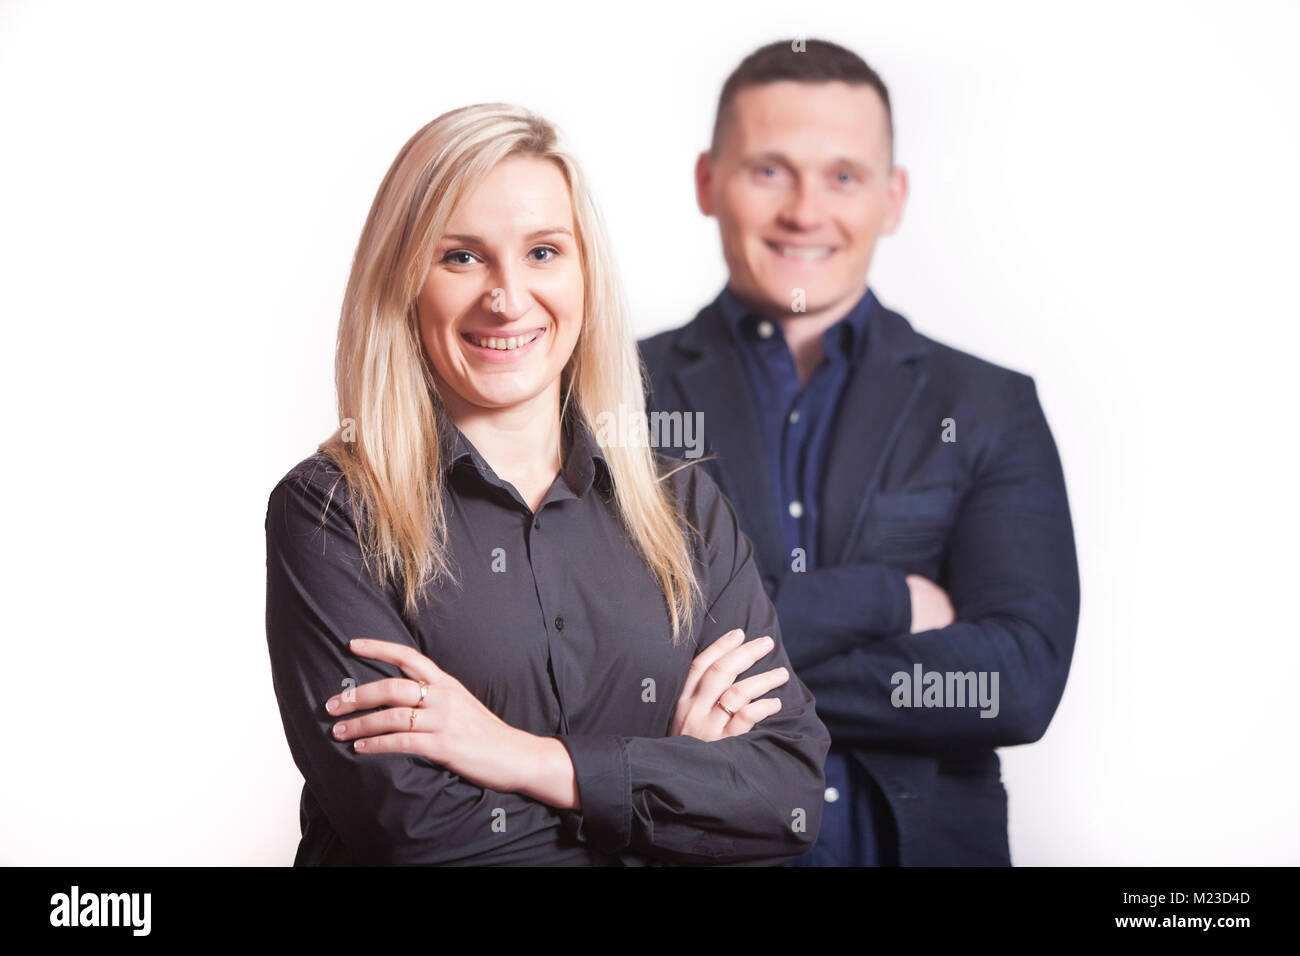 Co-workers - Stock Image